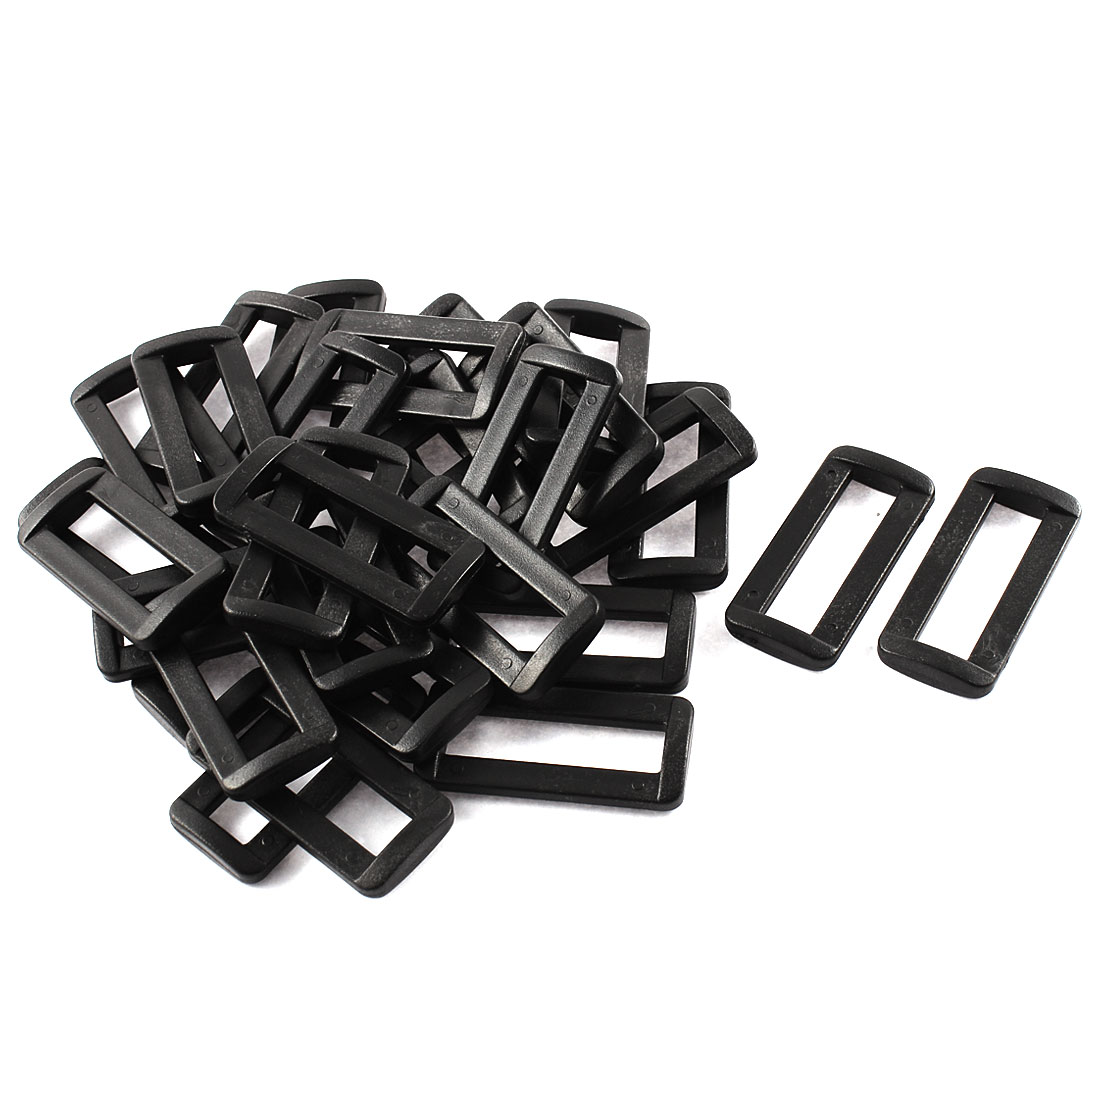 "30pcs Black Plastic Bar Slides Buckles for 1.5"" Webbing Strap"